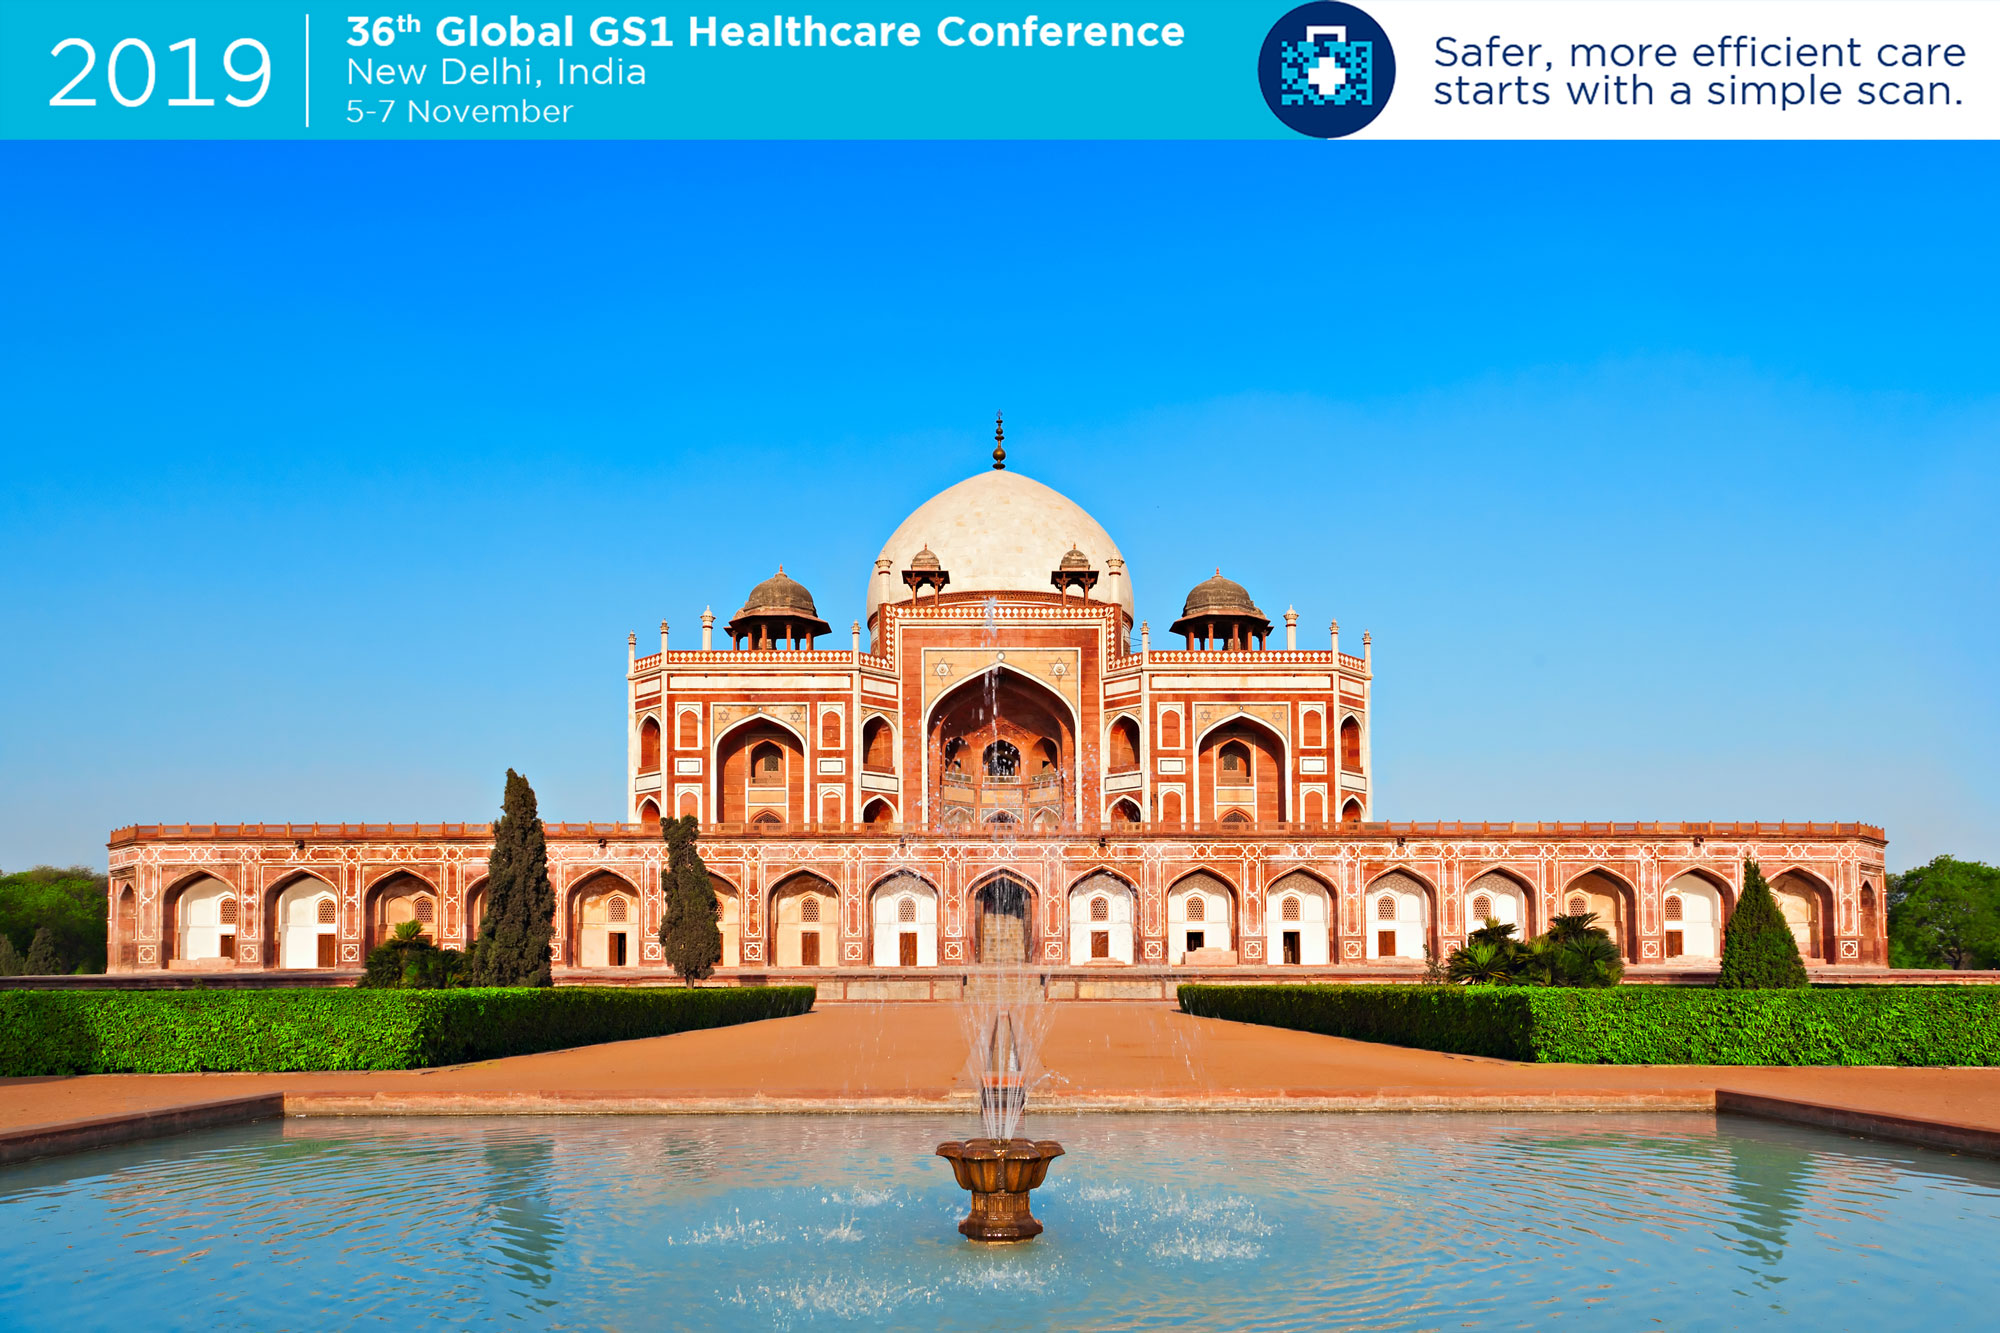 36th Global GS1 Healthcare Conference, New Delhi